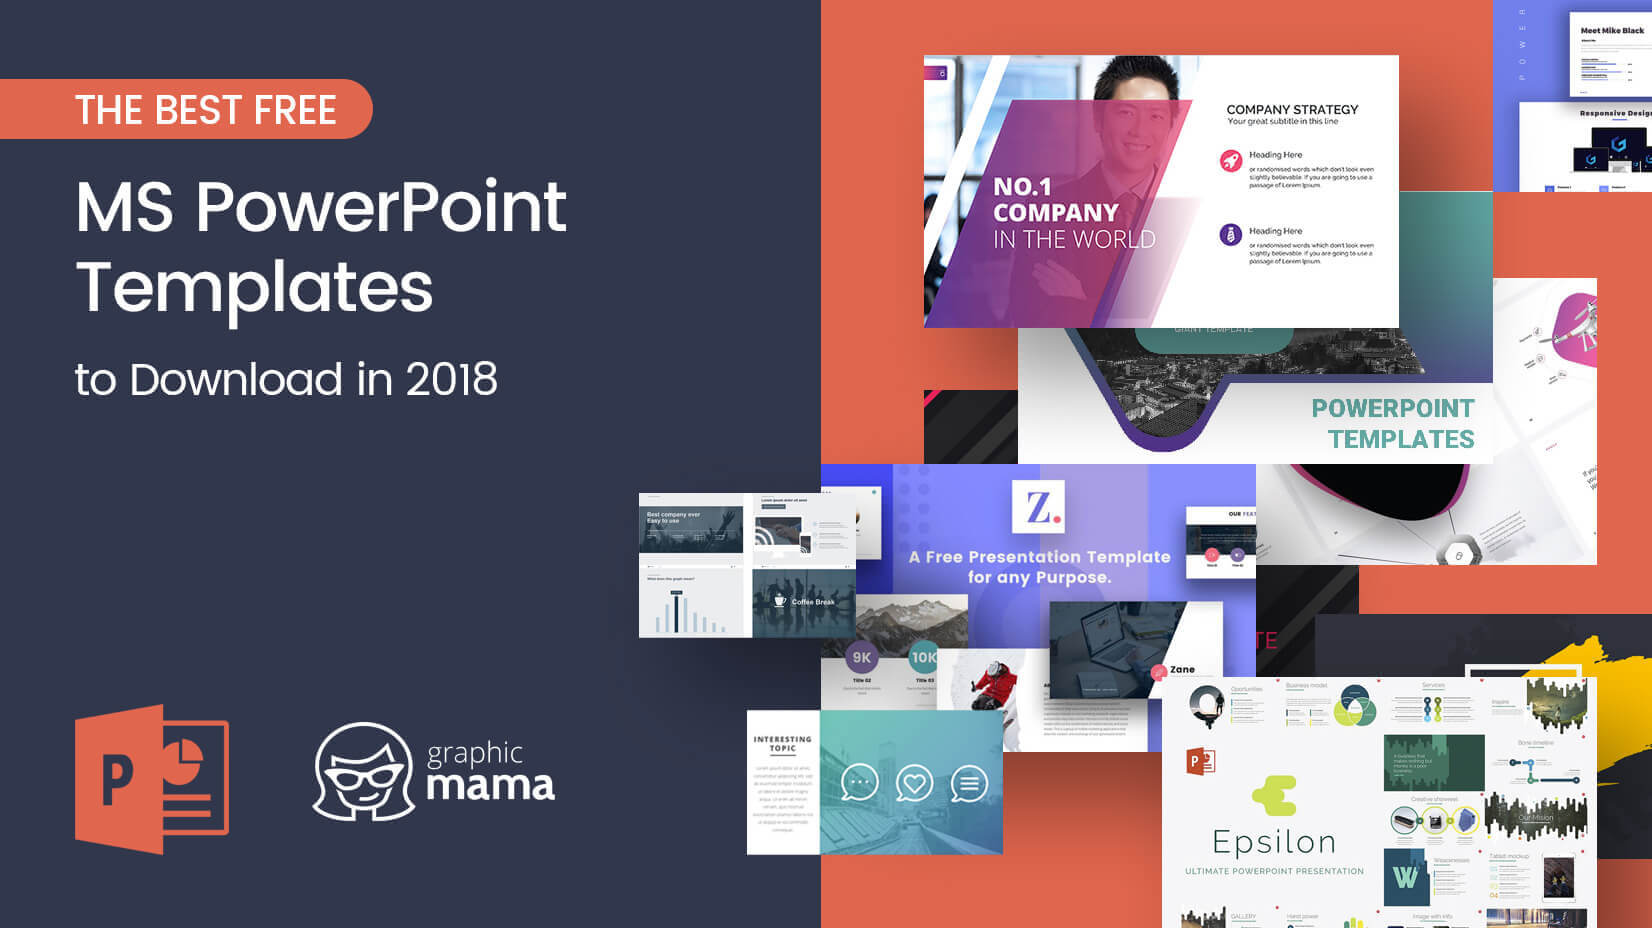 The Best Free Powerpoint Templates To Download In 2018 Throughout Powerpoint Slides Design Templates For Free